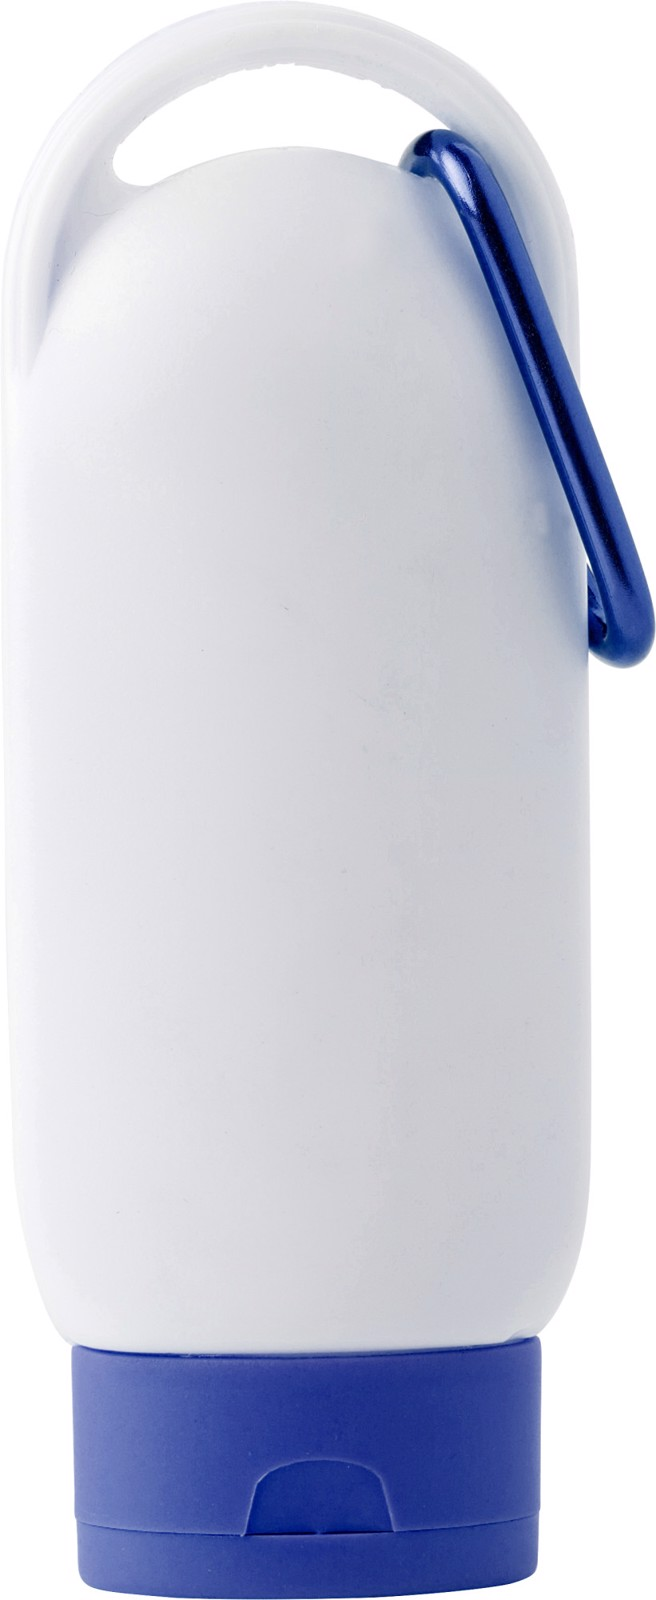 PE sunscreen lotion bottle - Cobalt Blue